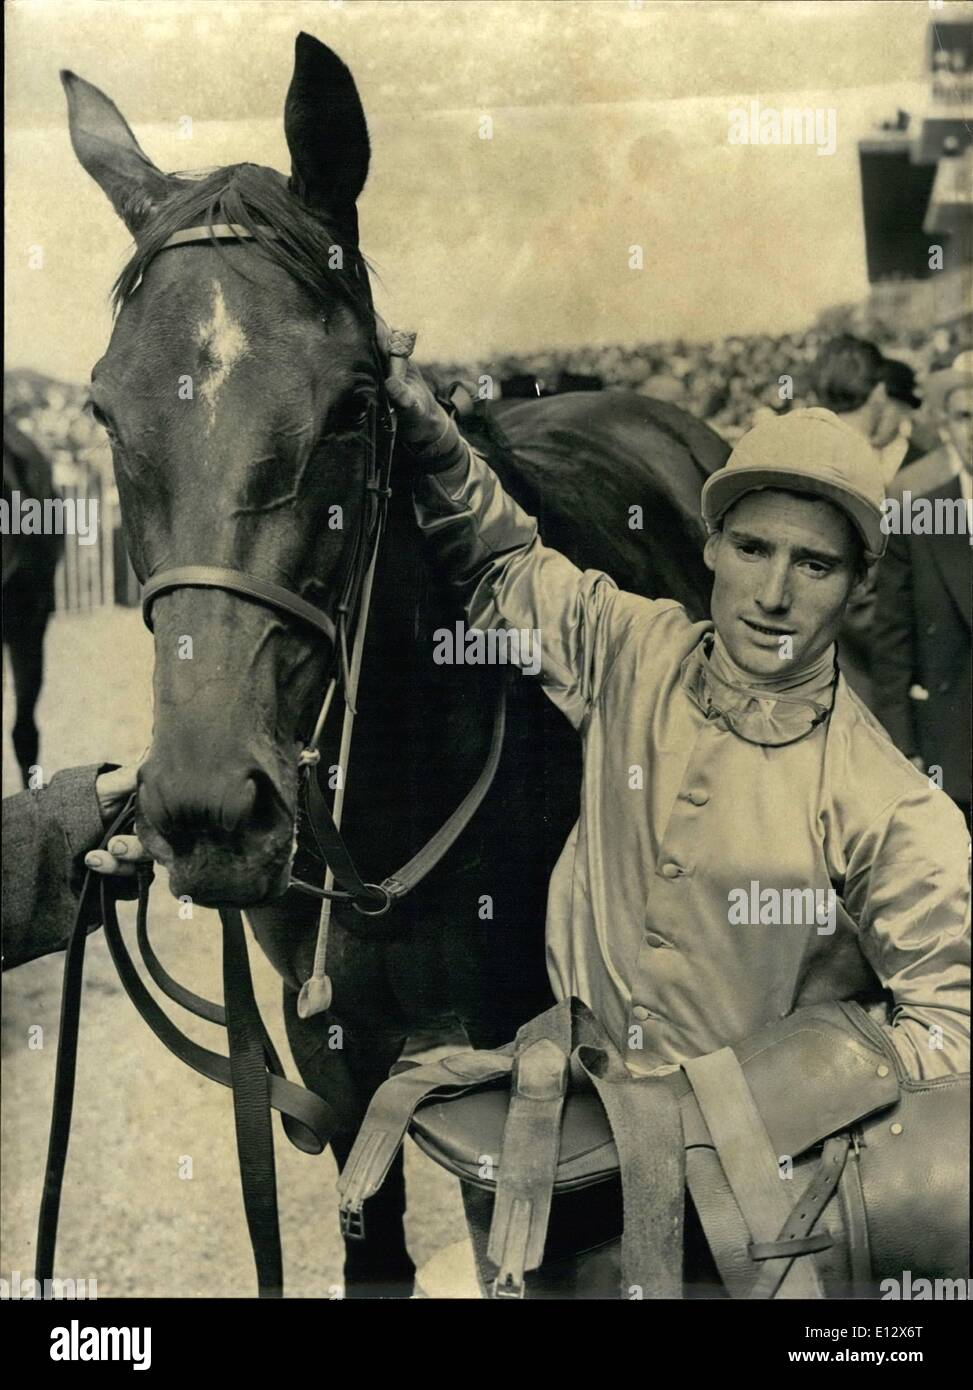 Feb. 25, 2012 - Dushka, who is owned by Francois Dupre and ridden by G. Thiboeuf, won the Prix de Diane after a race that was held today at Chantilly racetrack. Masai Women Attend Tribal Gathering Arusha Tanganyika - Stock Image